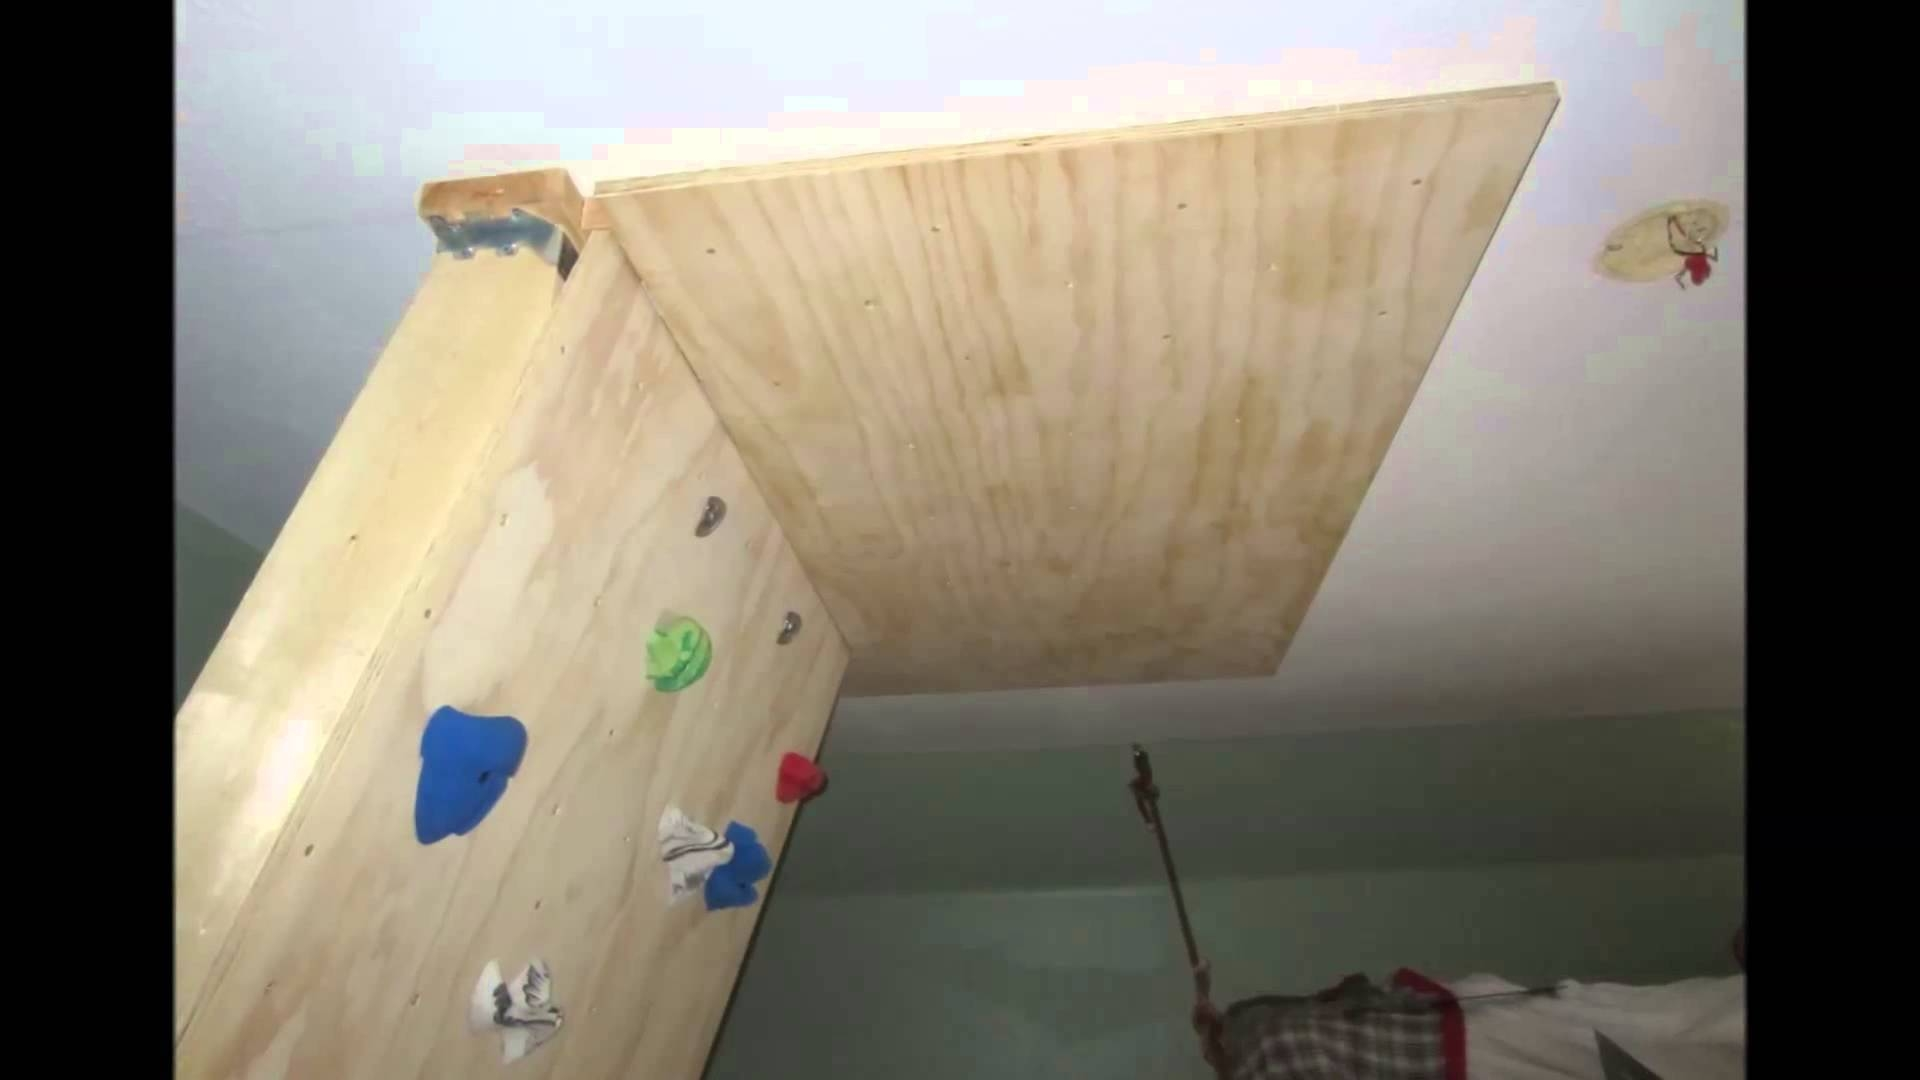 Diy Home Bouldering Wall Youtube – Dma Homes   #23689 Within Newest Home Bouldering Wall Design (View 8 of 20)